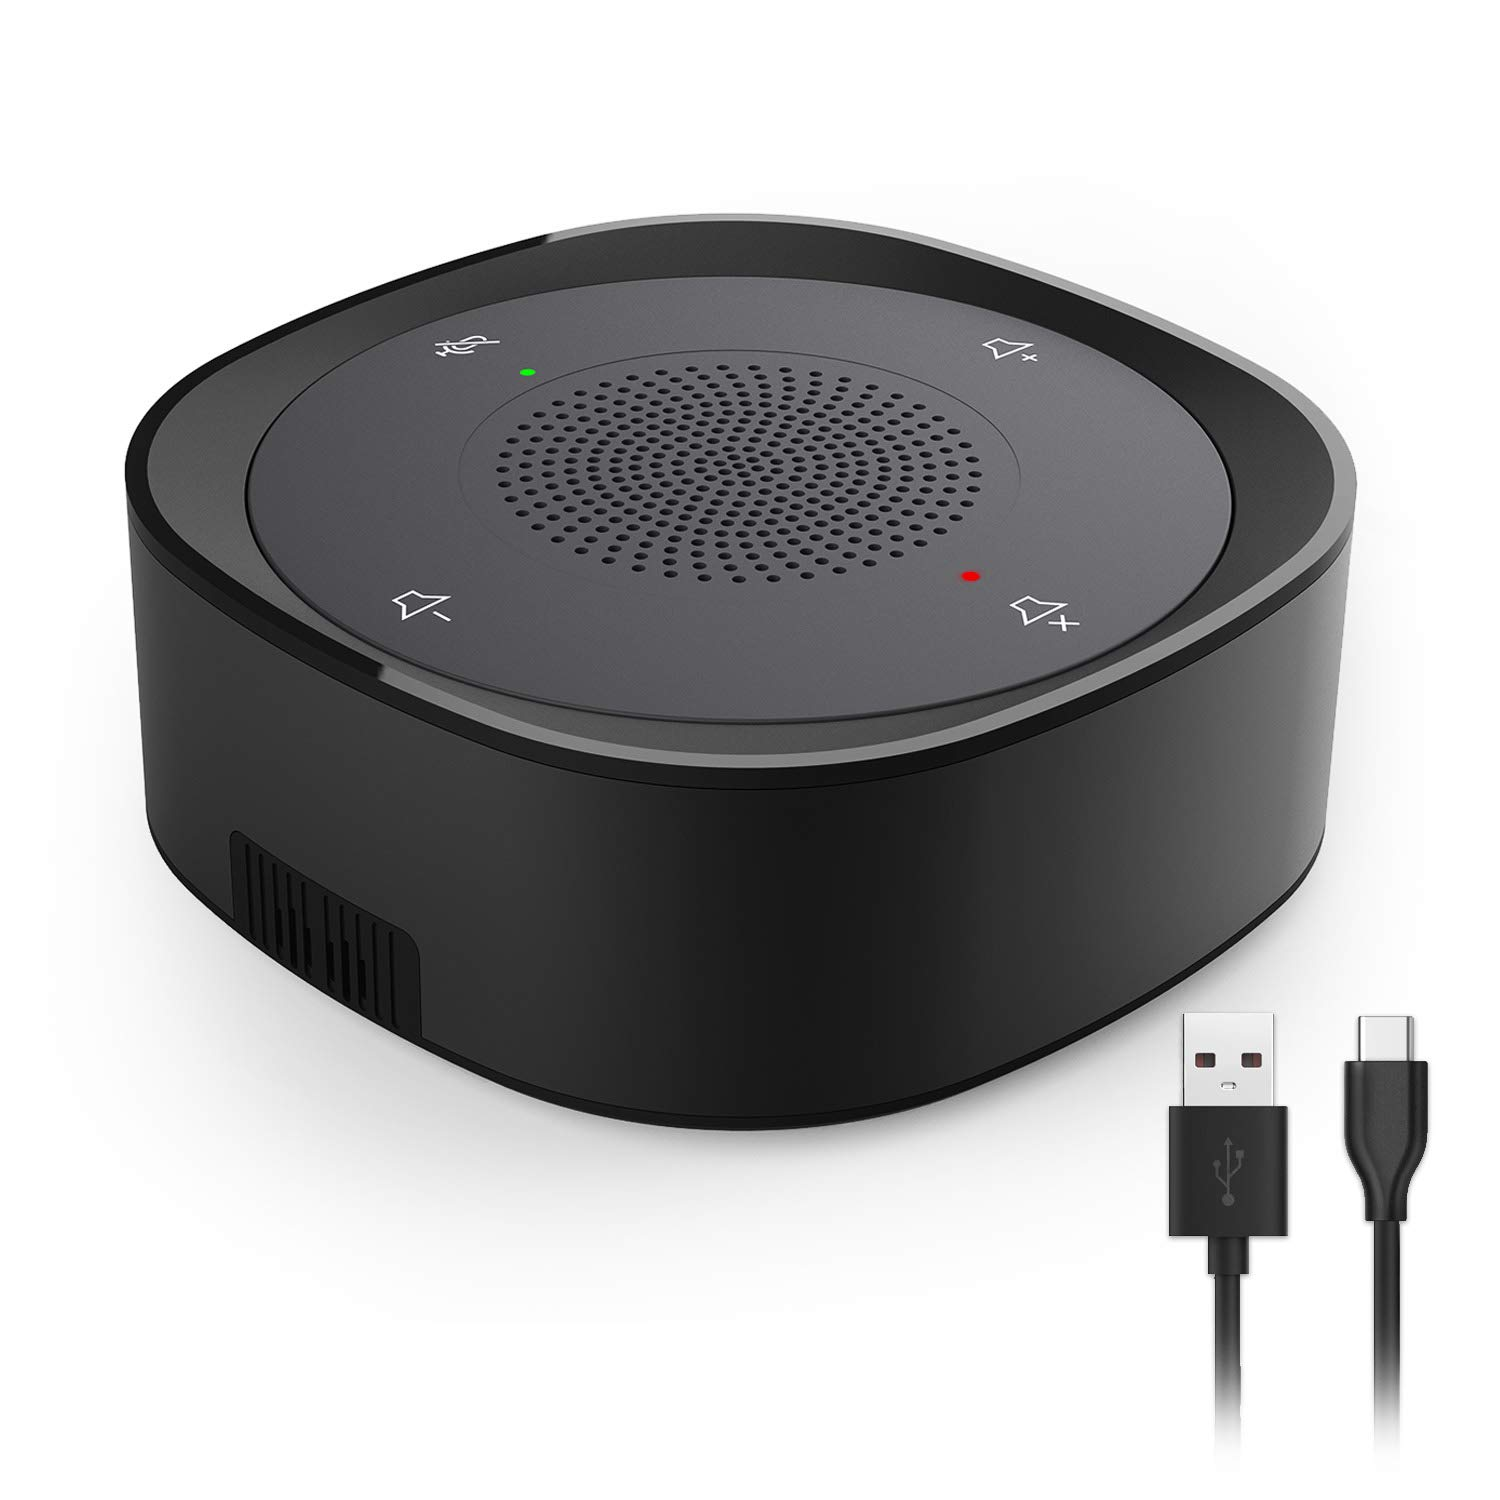 USB Speakerphone Microphone, Conference Speaker Omnidirectional Computer Mic, with 360º Voice Pickup, Touch-Sensor Buttons for Mute/unmute, Streaming, Call Speaker Skype, Webinar, Interview - Black